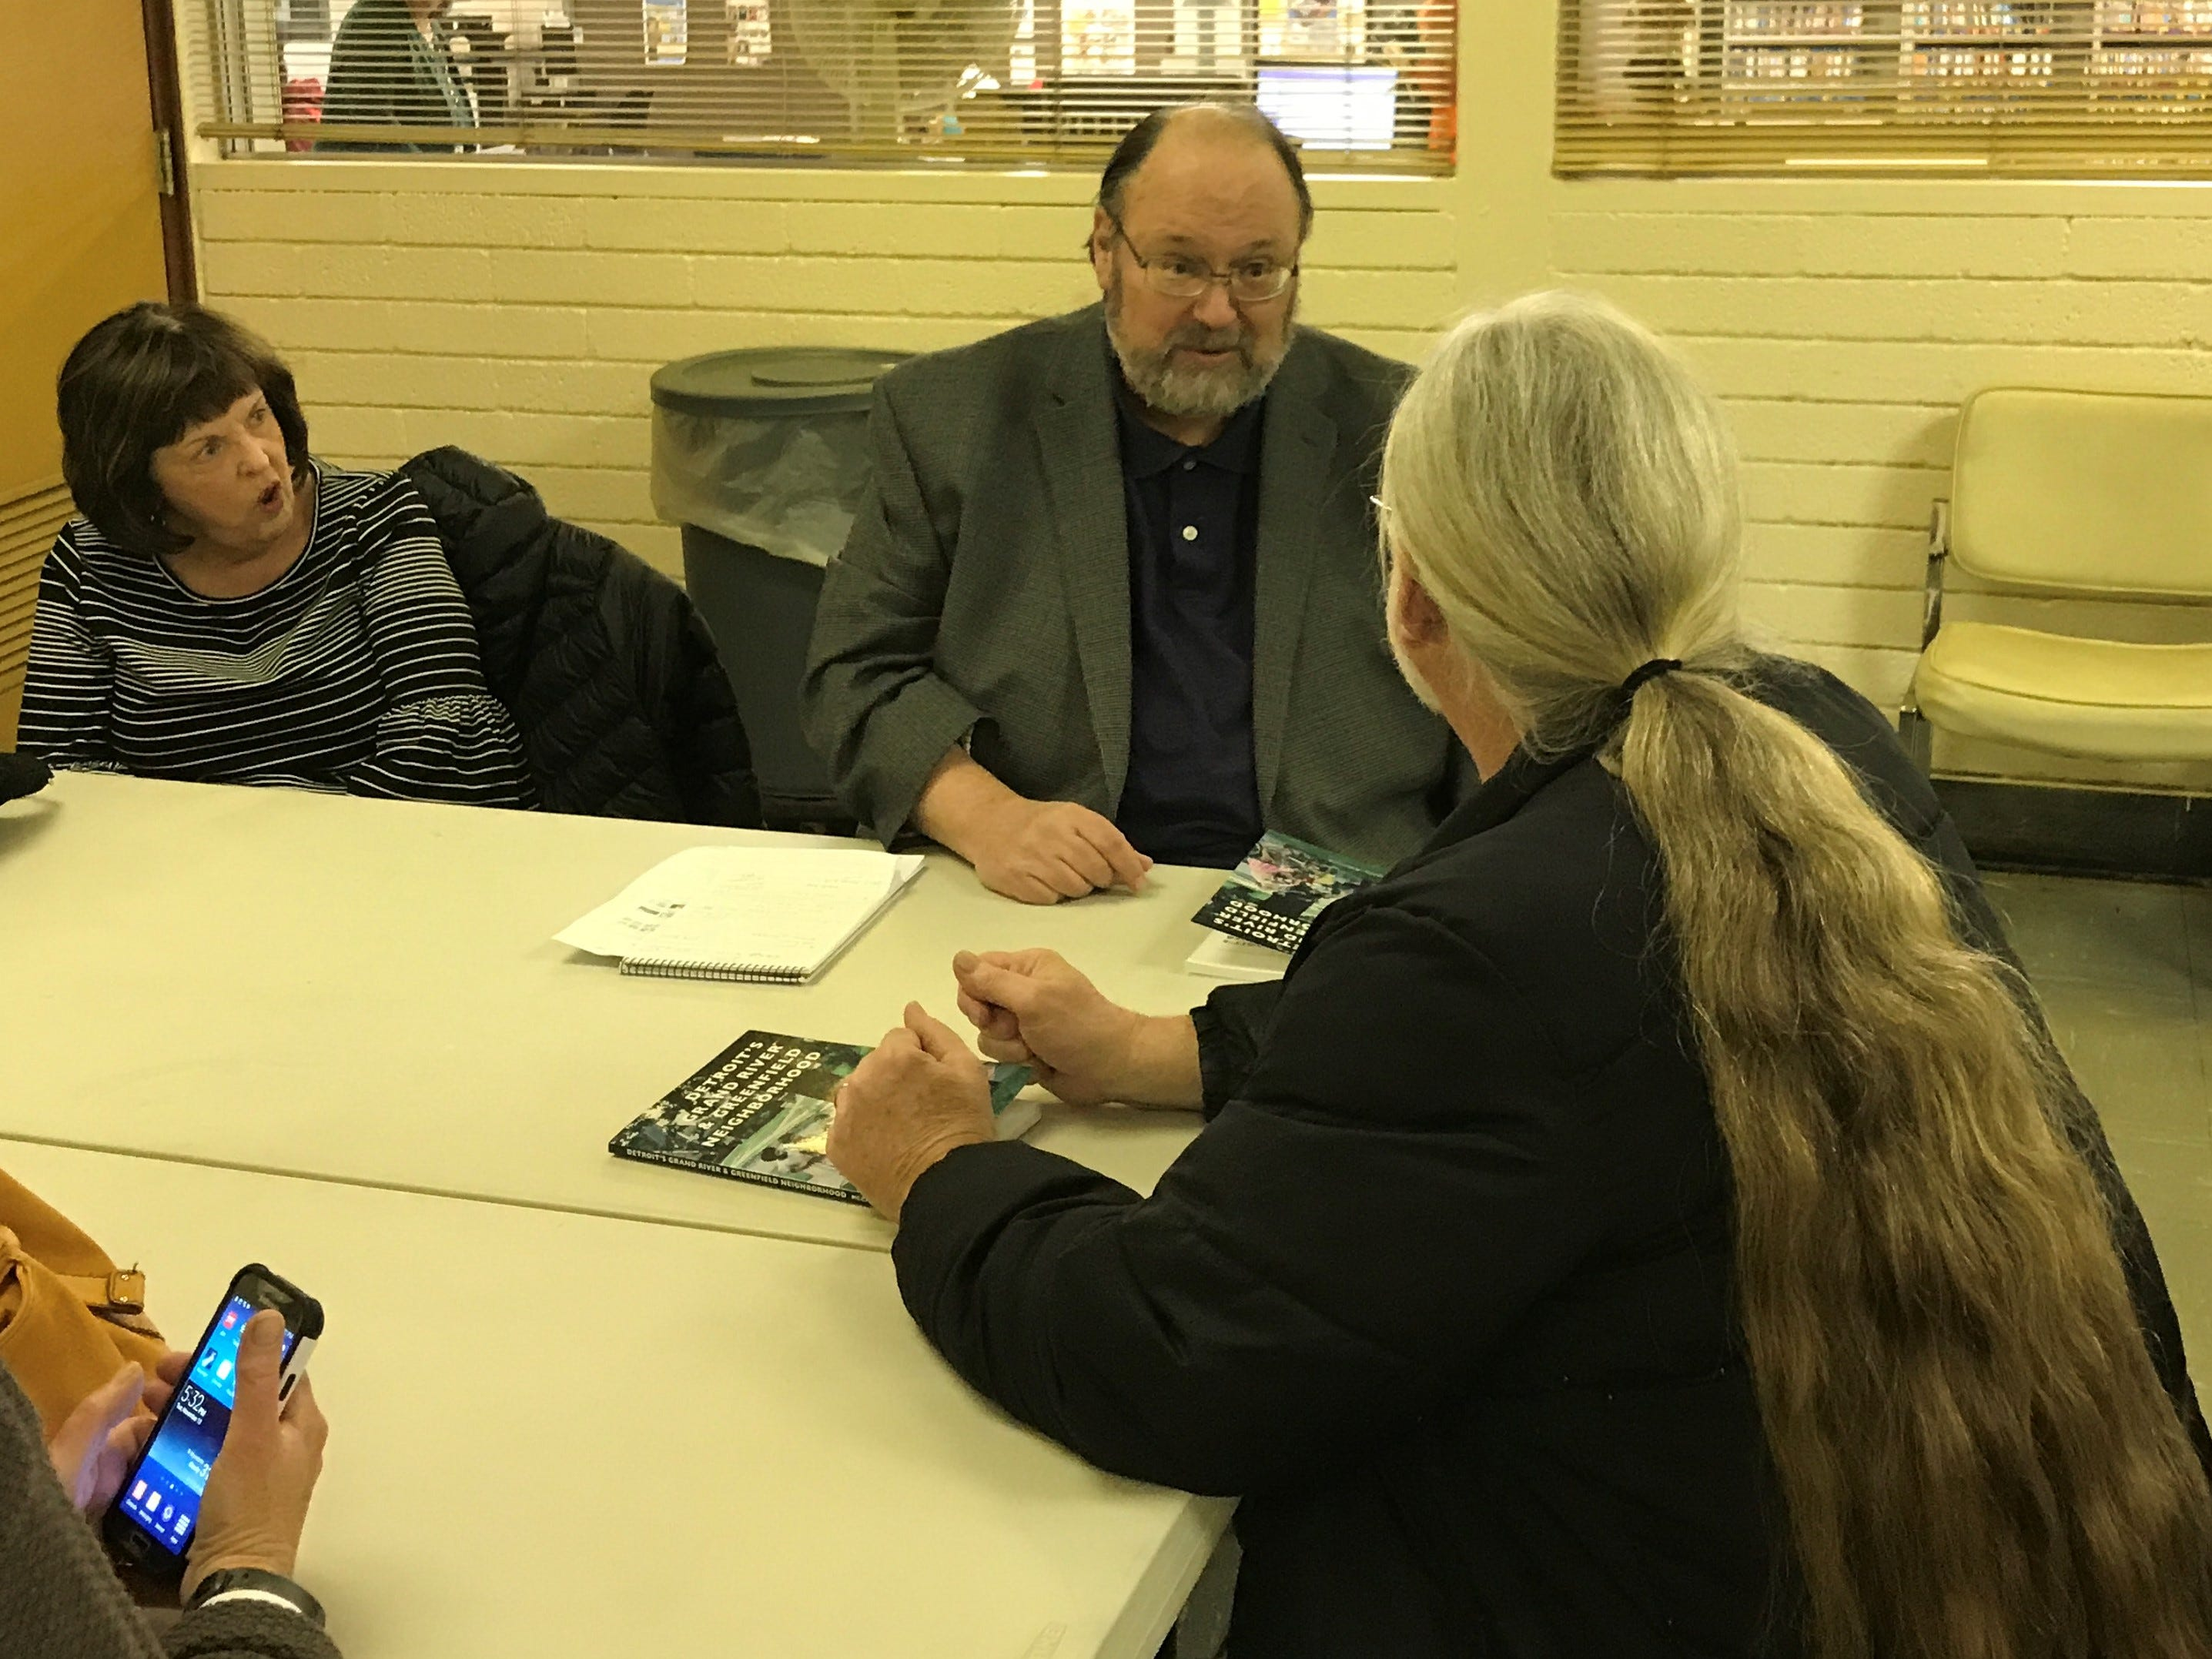 Author Joseph McCauley, of Northville talks with Steve Backus (right) about the Detroit neighborhood his book is about. At left is McCauley's wife, Grace.